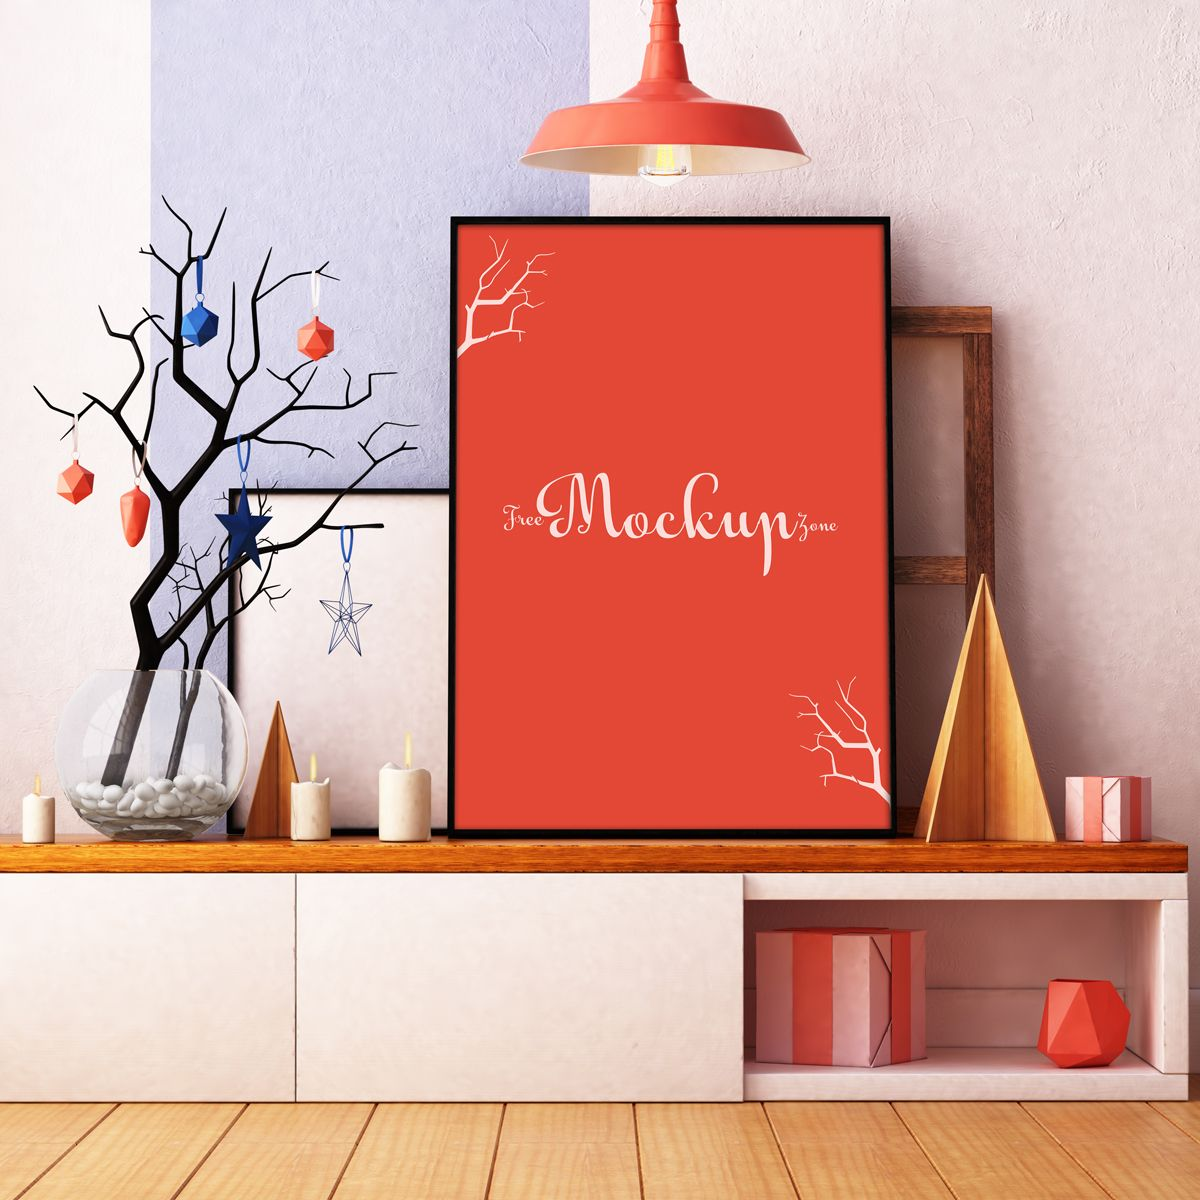 Free room interior poster mockup psd all things design - Design a room online free ...